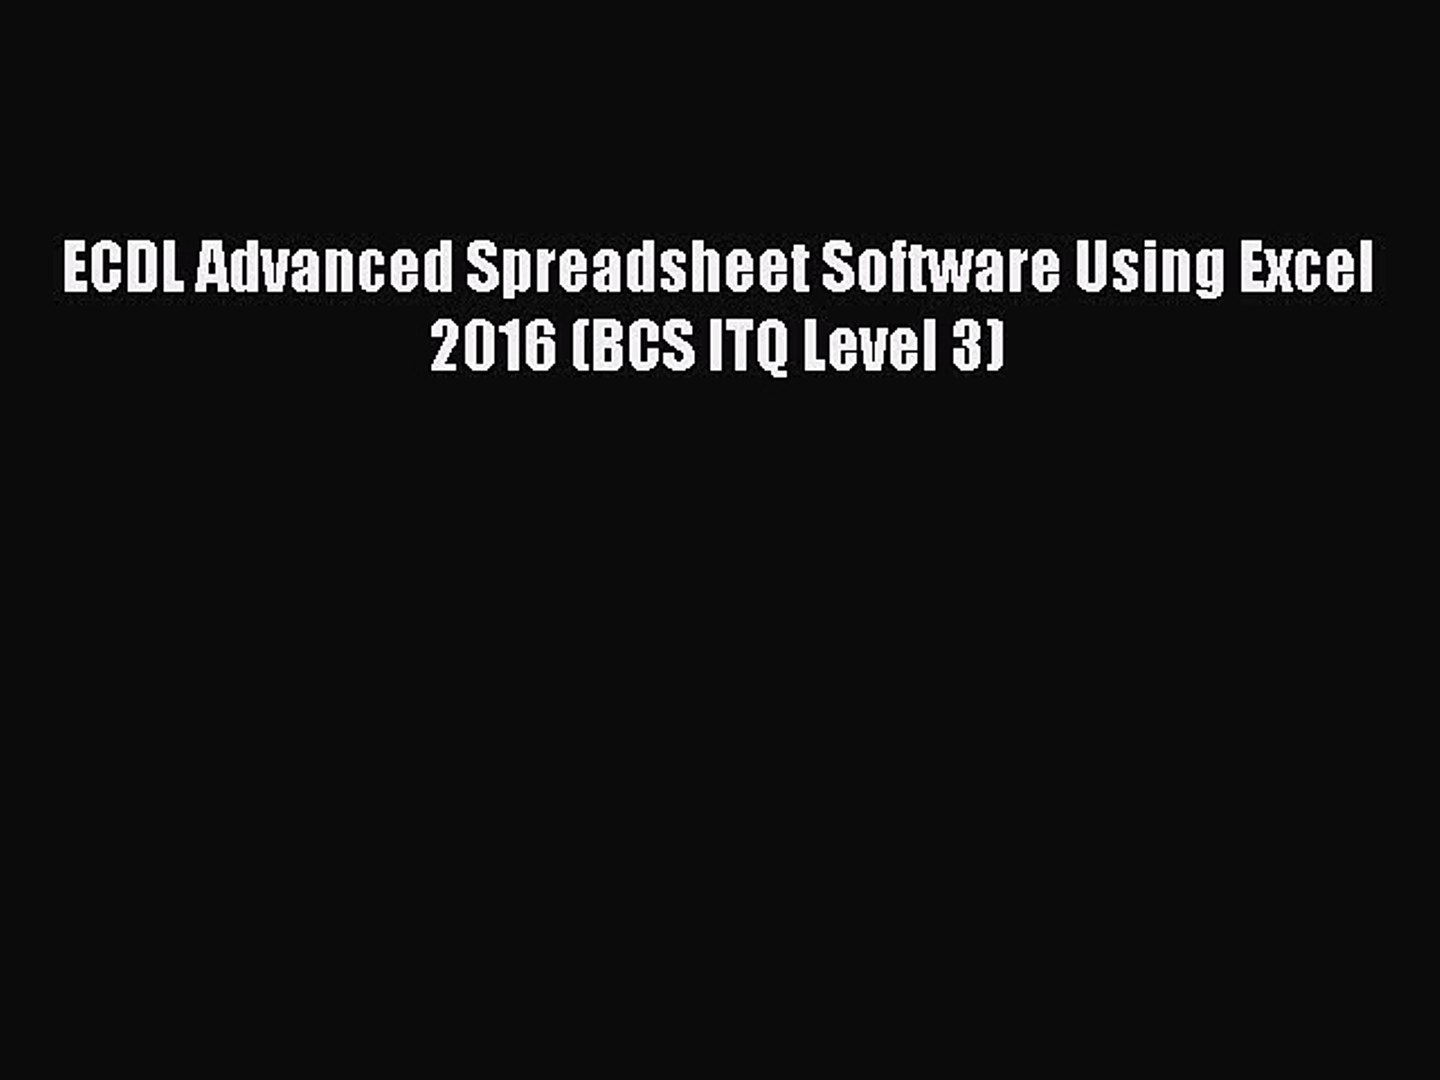 Advanced Spreadsheet Software Pertaining To Download Ecdl Advanced Spreadsheet Software Using Excel 2016 Bcs